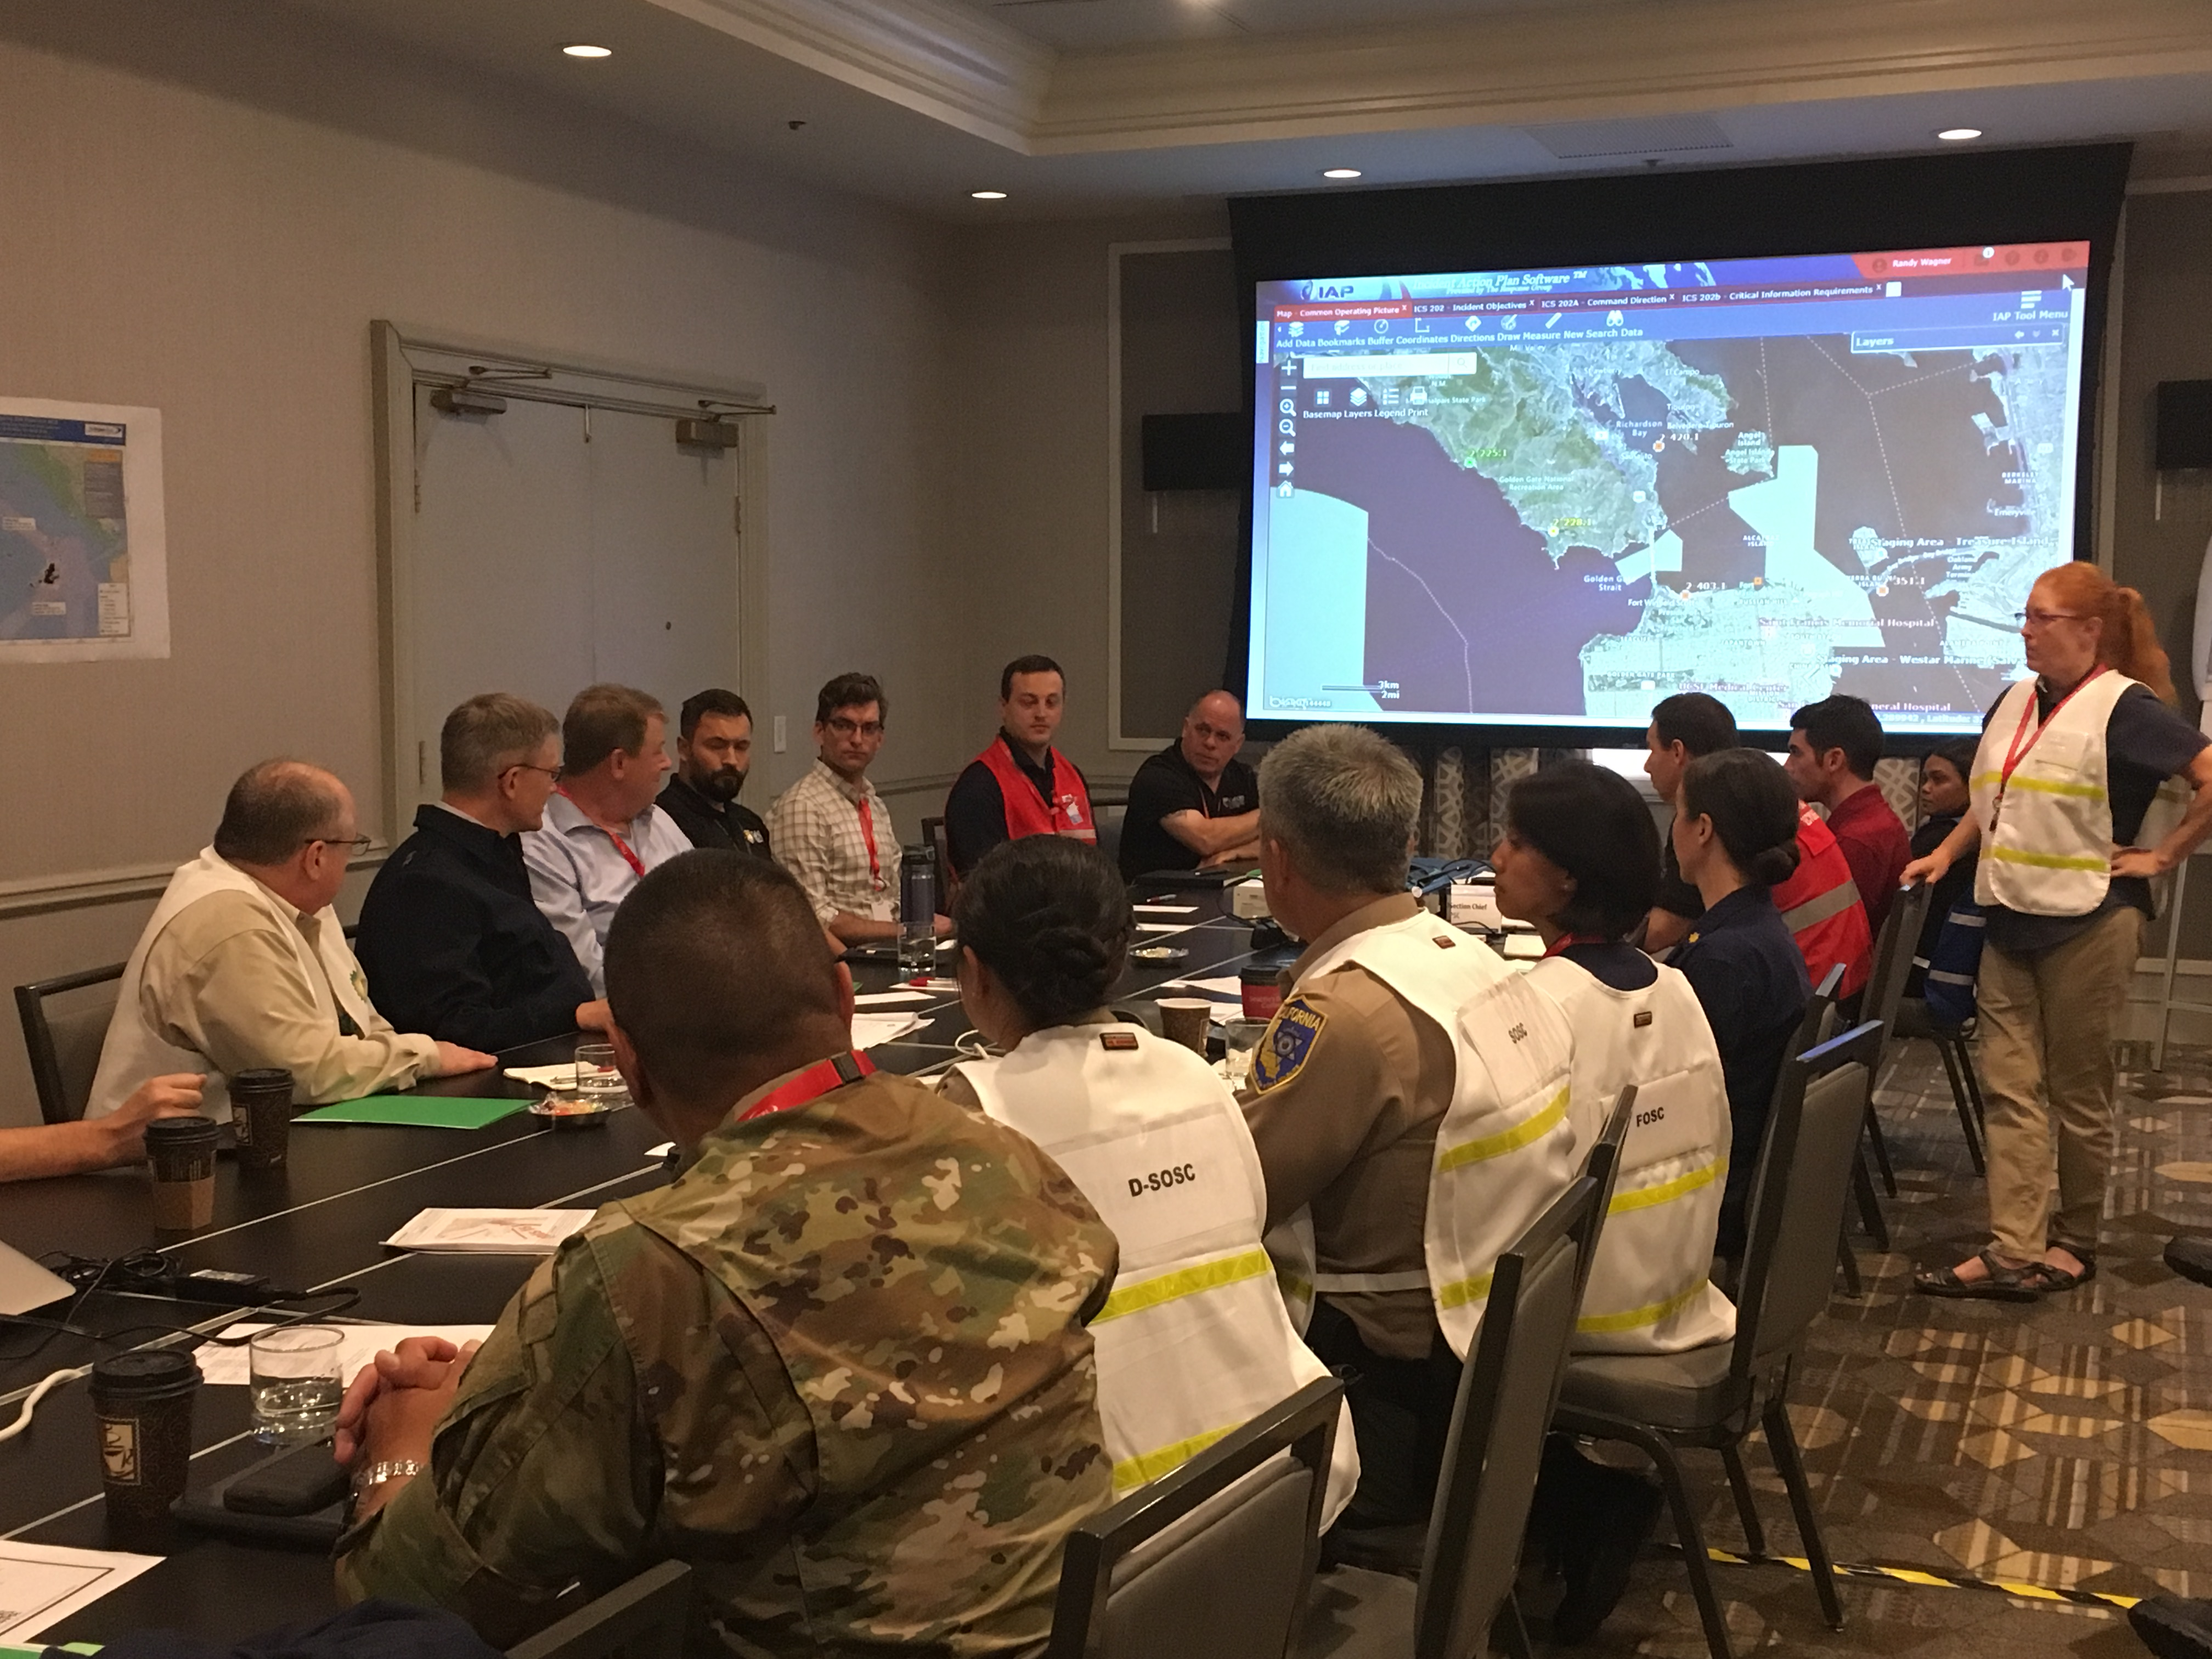 agency officials in vests sitting at table with large map on screen